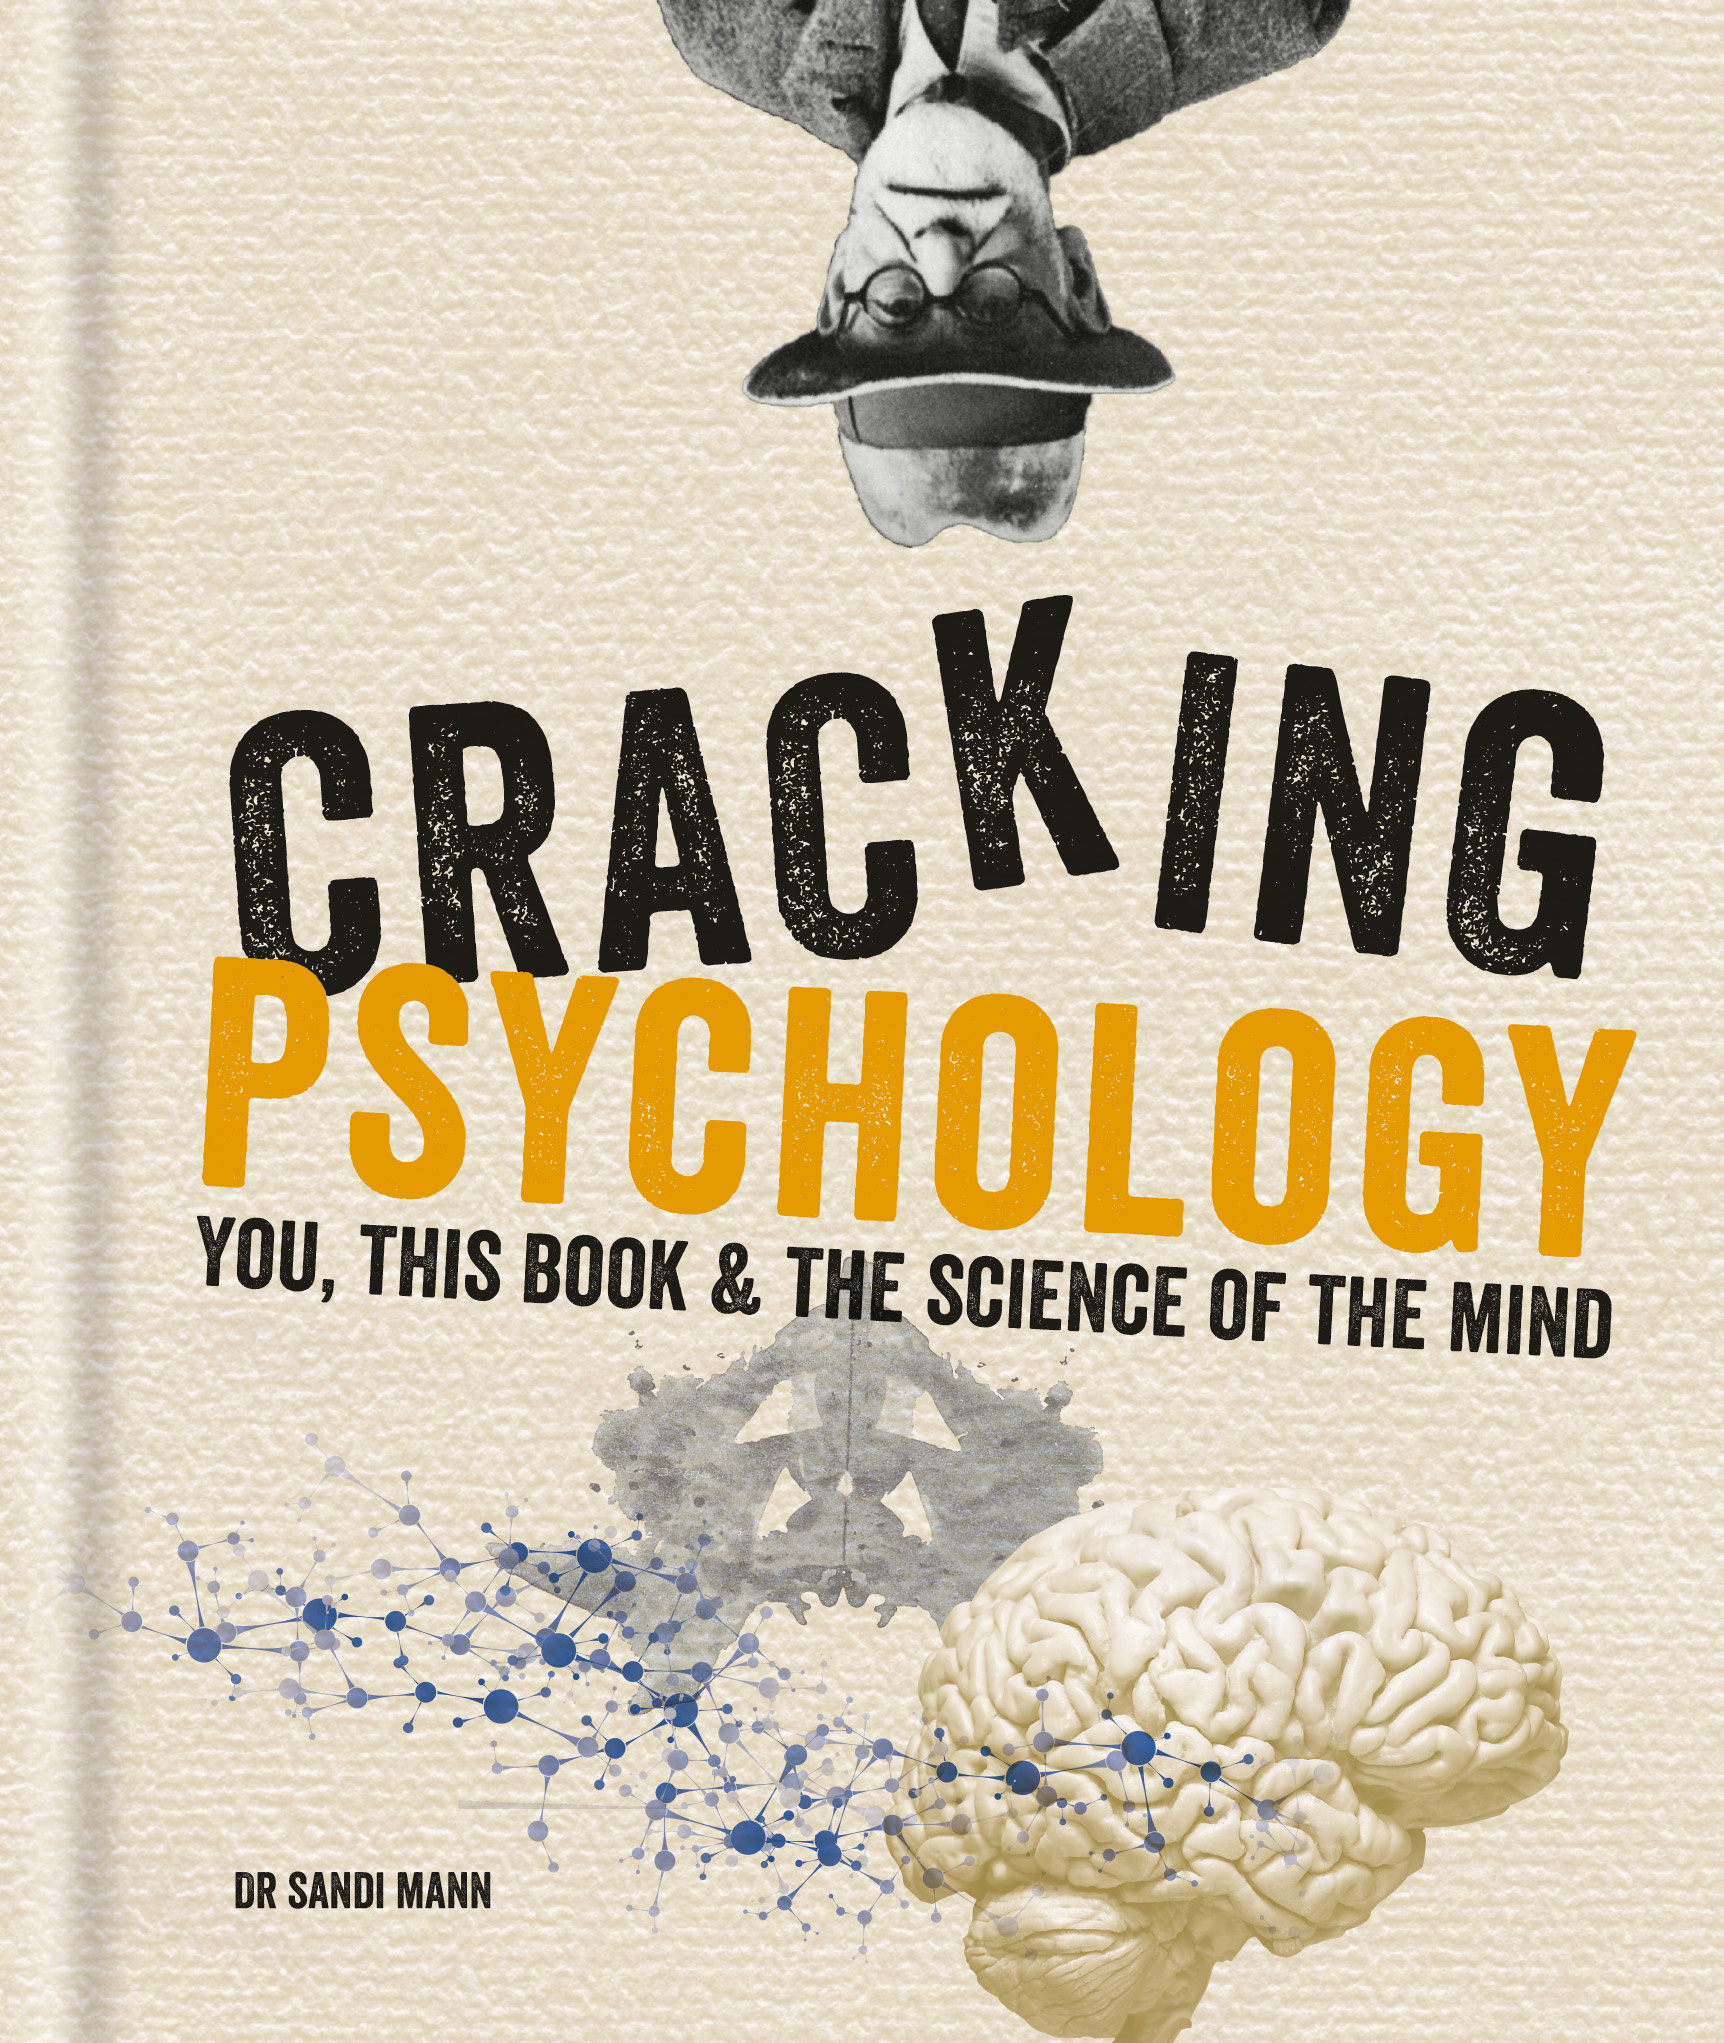 Cracking Psychology You This Book The Science Of The Mind By